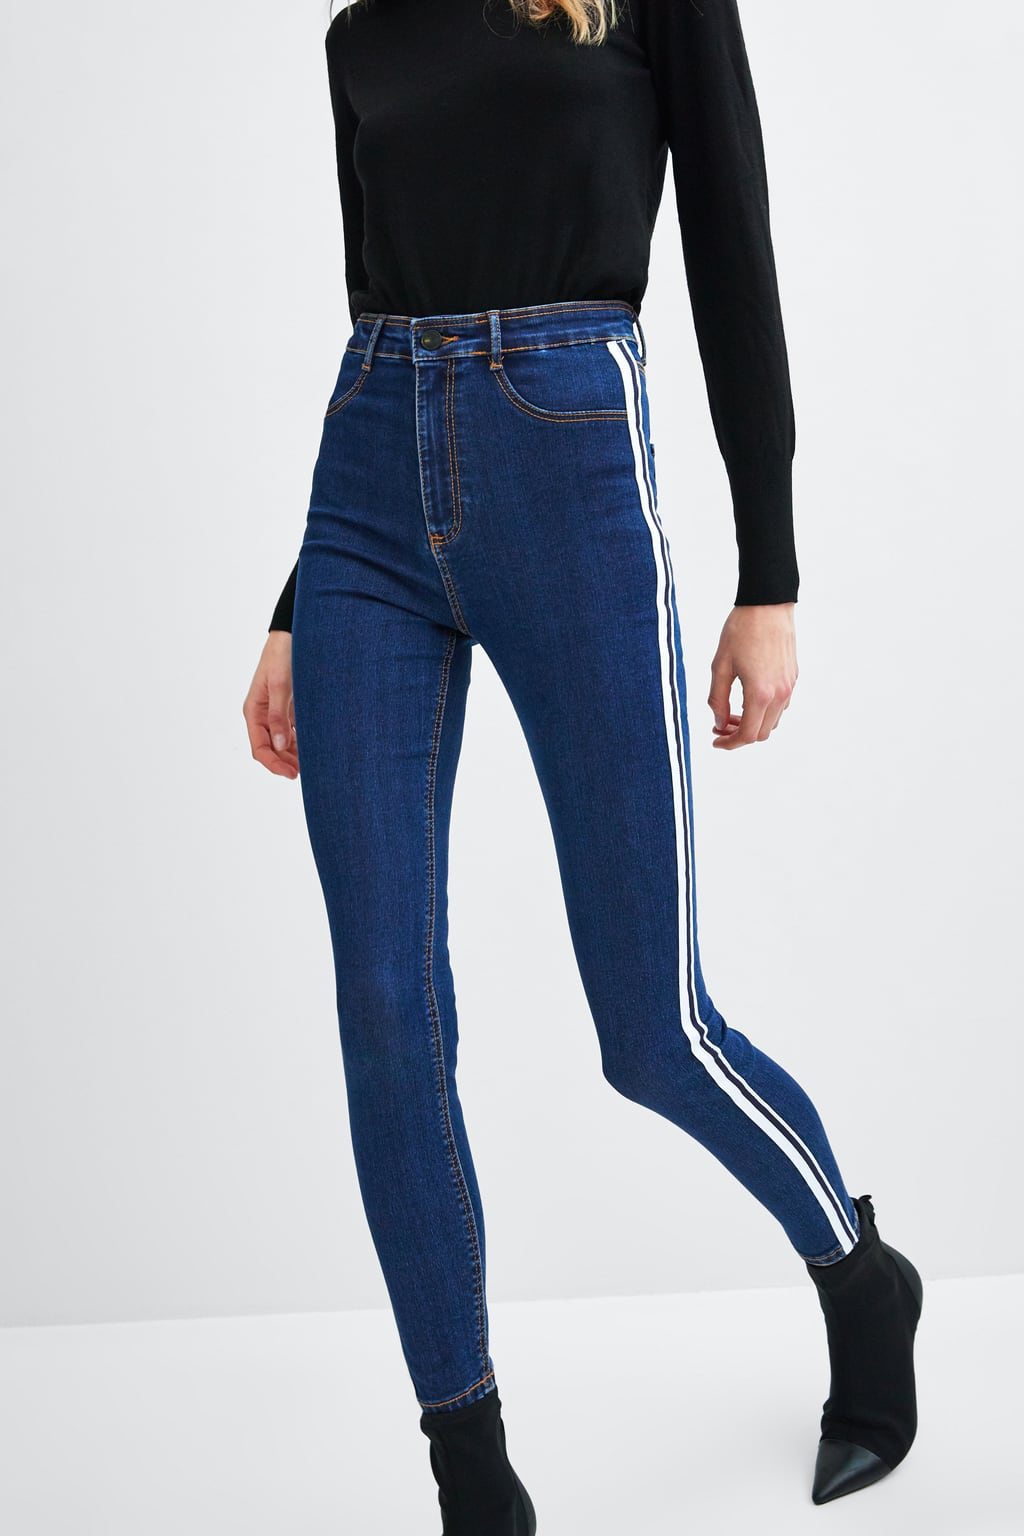 3-zara-jeggings-skinny-pants-that-are-not-jeans